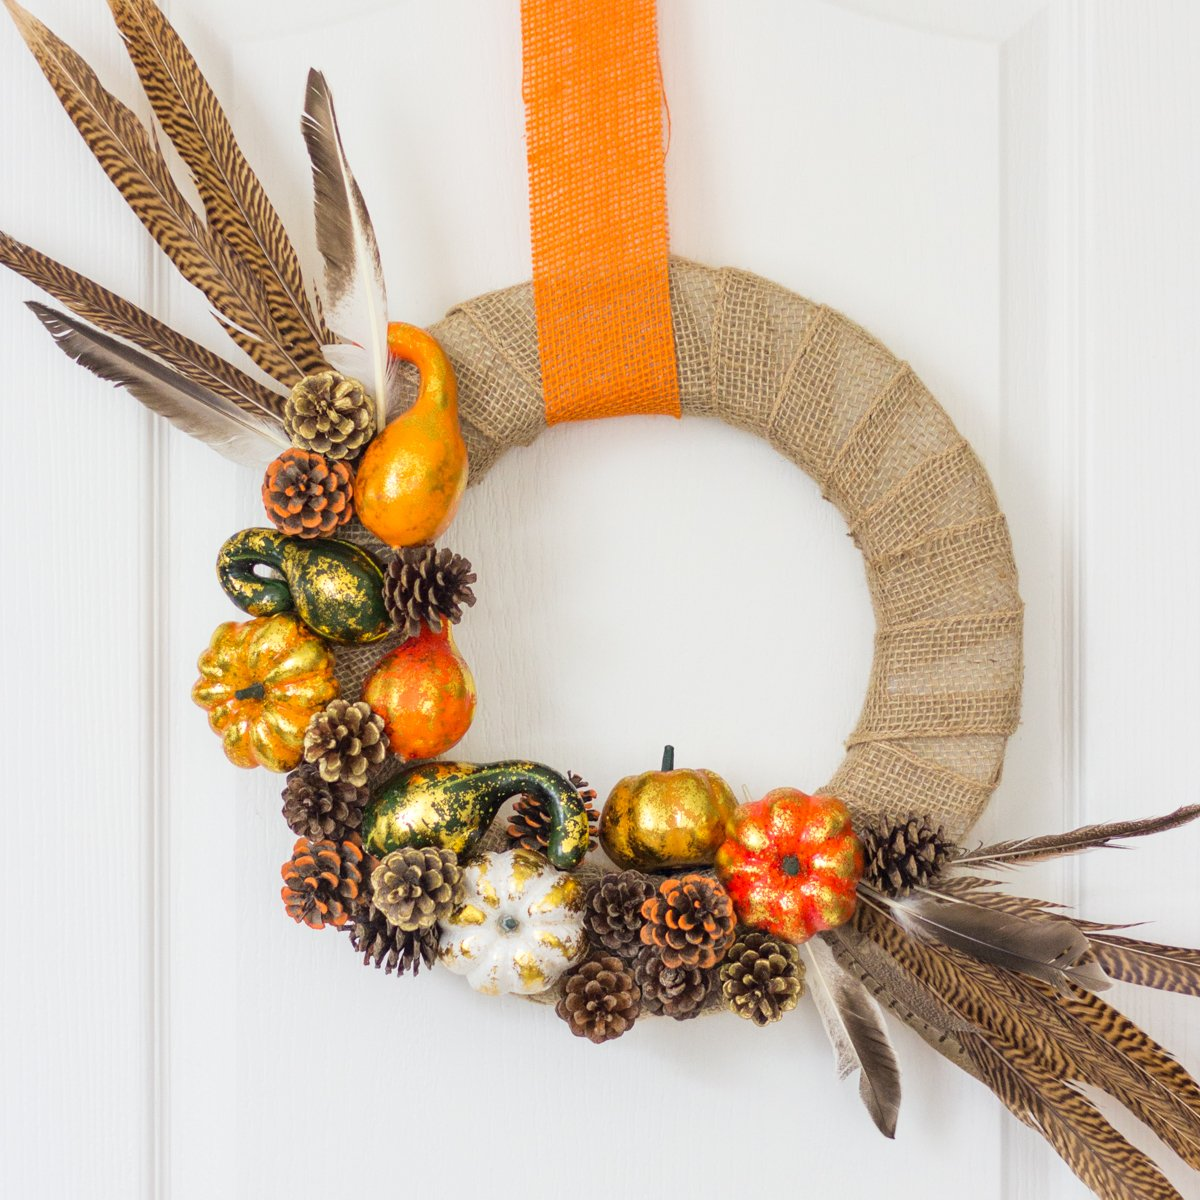 Decorating Home For Christmas 30 Decorative Diys To Make A Pine Cone Wreath Guide Patterns